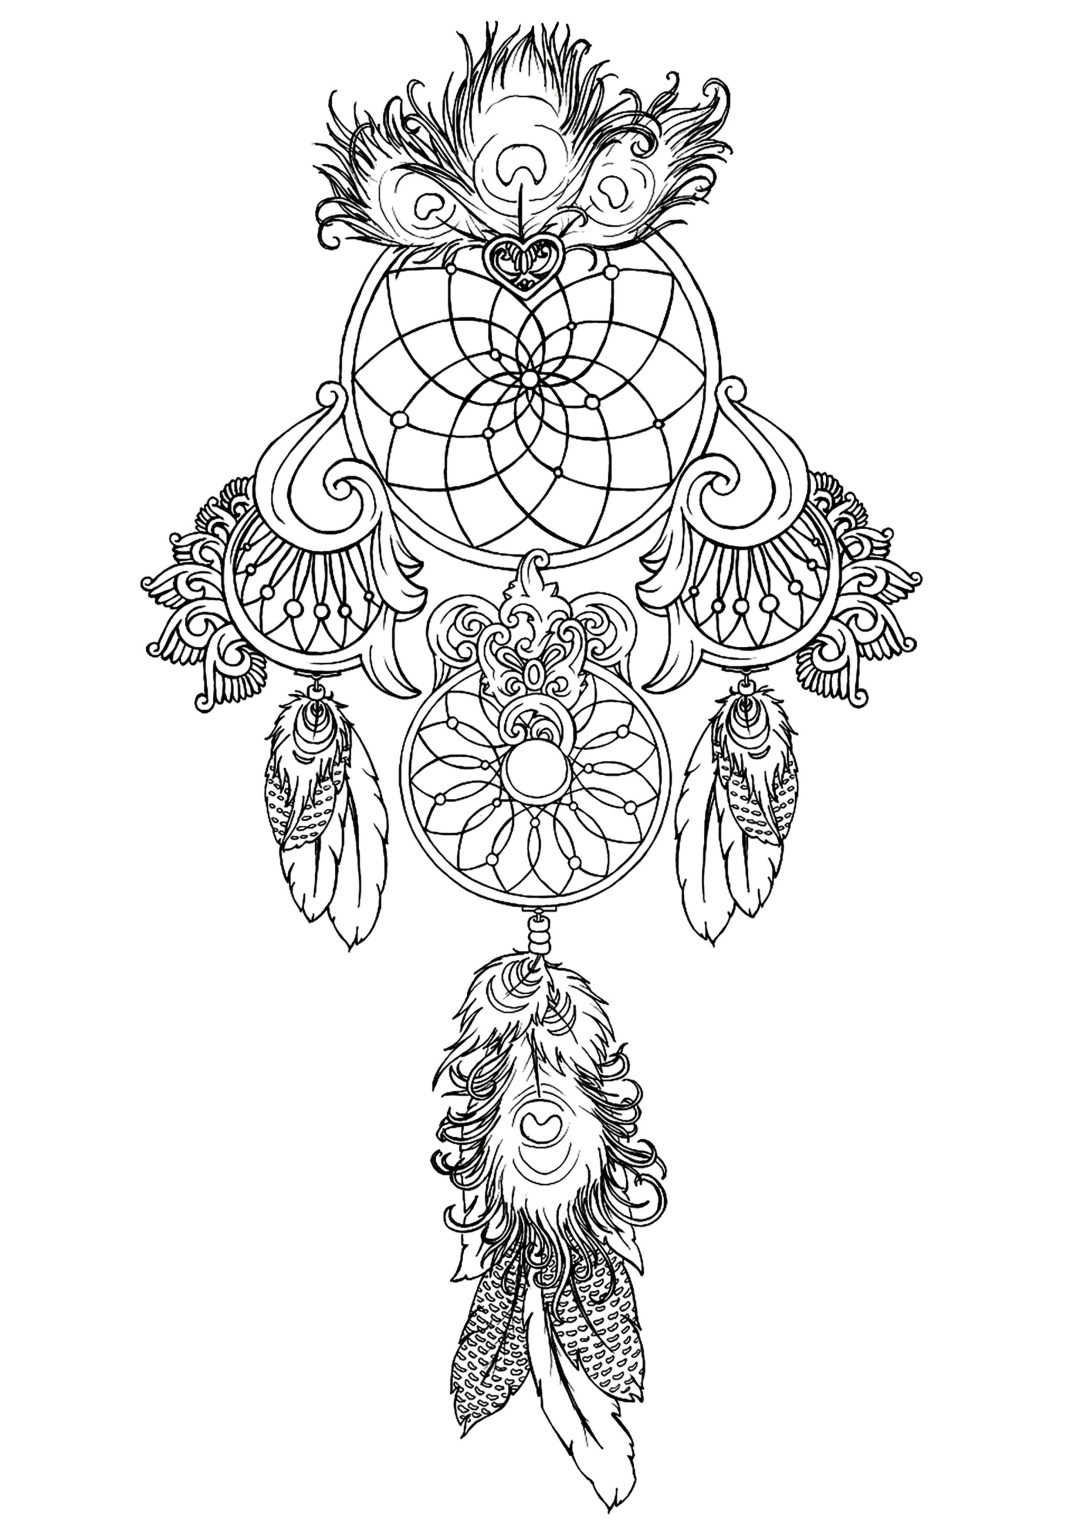 Free Online Coloring Pages For Adults Creatively Crafting